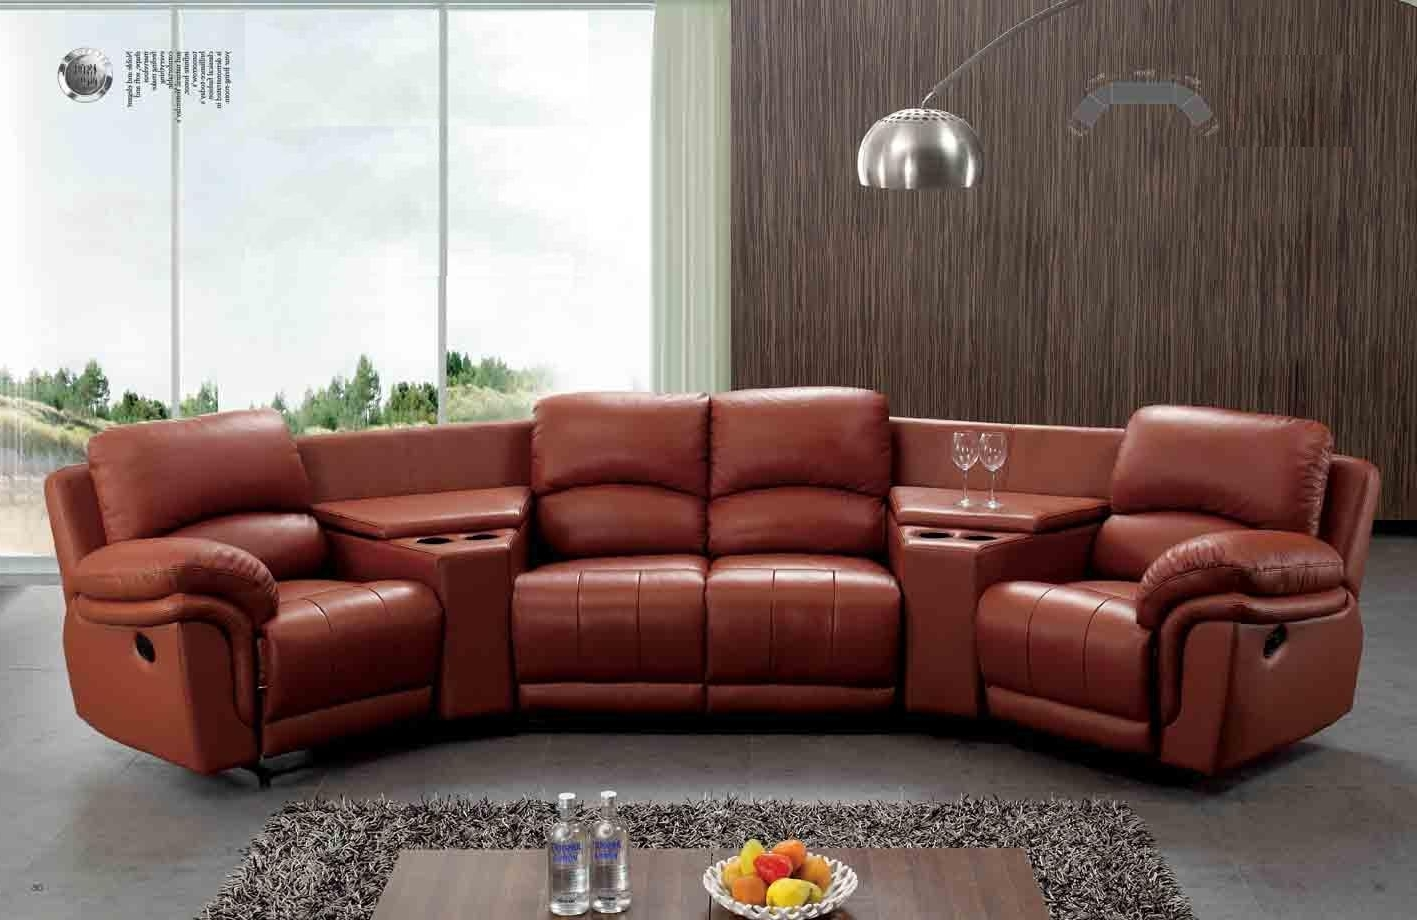 Famous Recliner Sofas Pertaining To Recliner Sofas 4u (View 4 of 17)